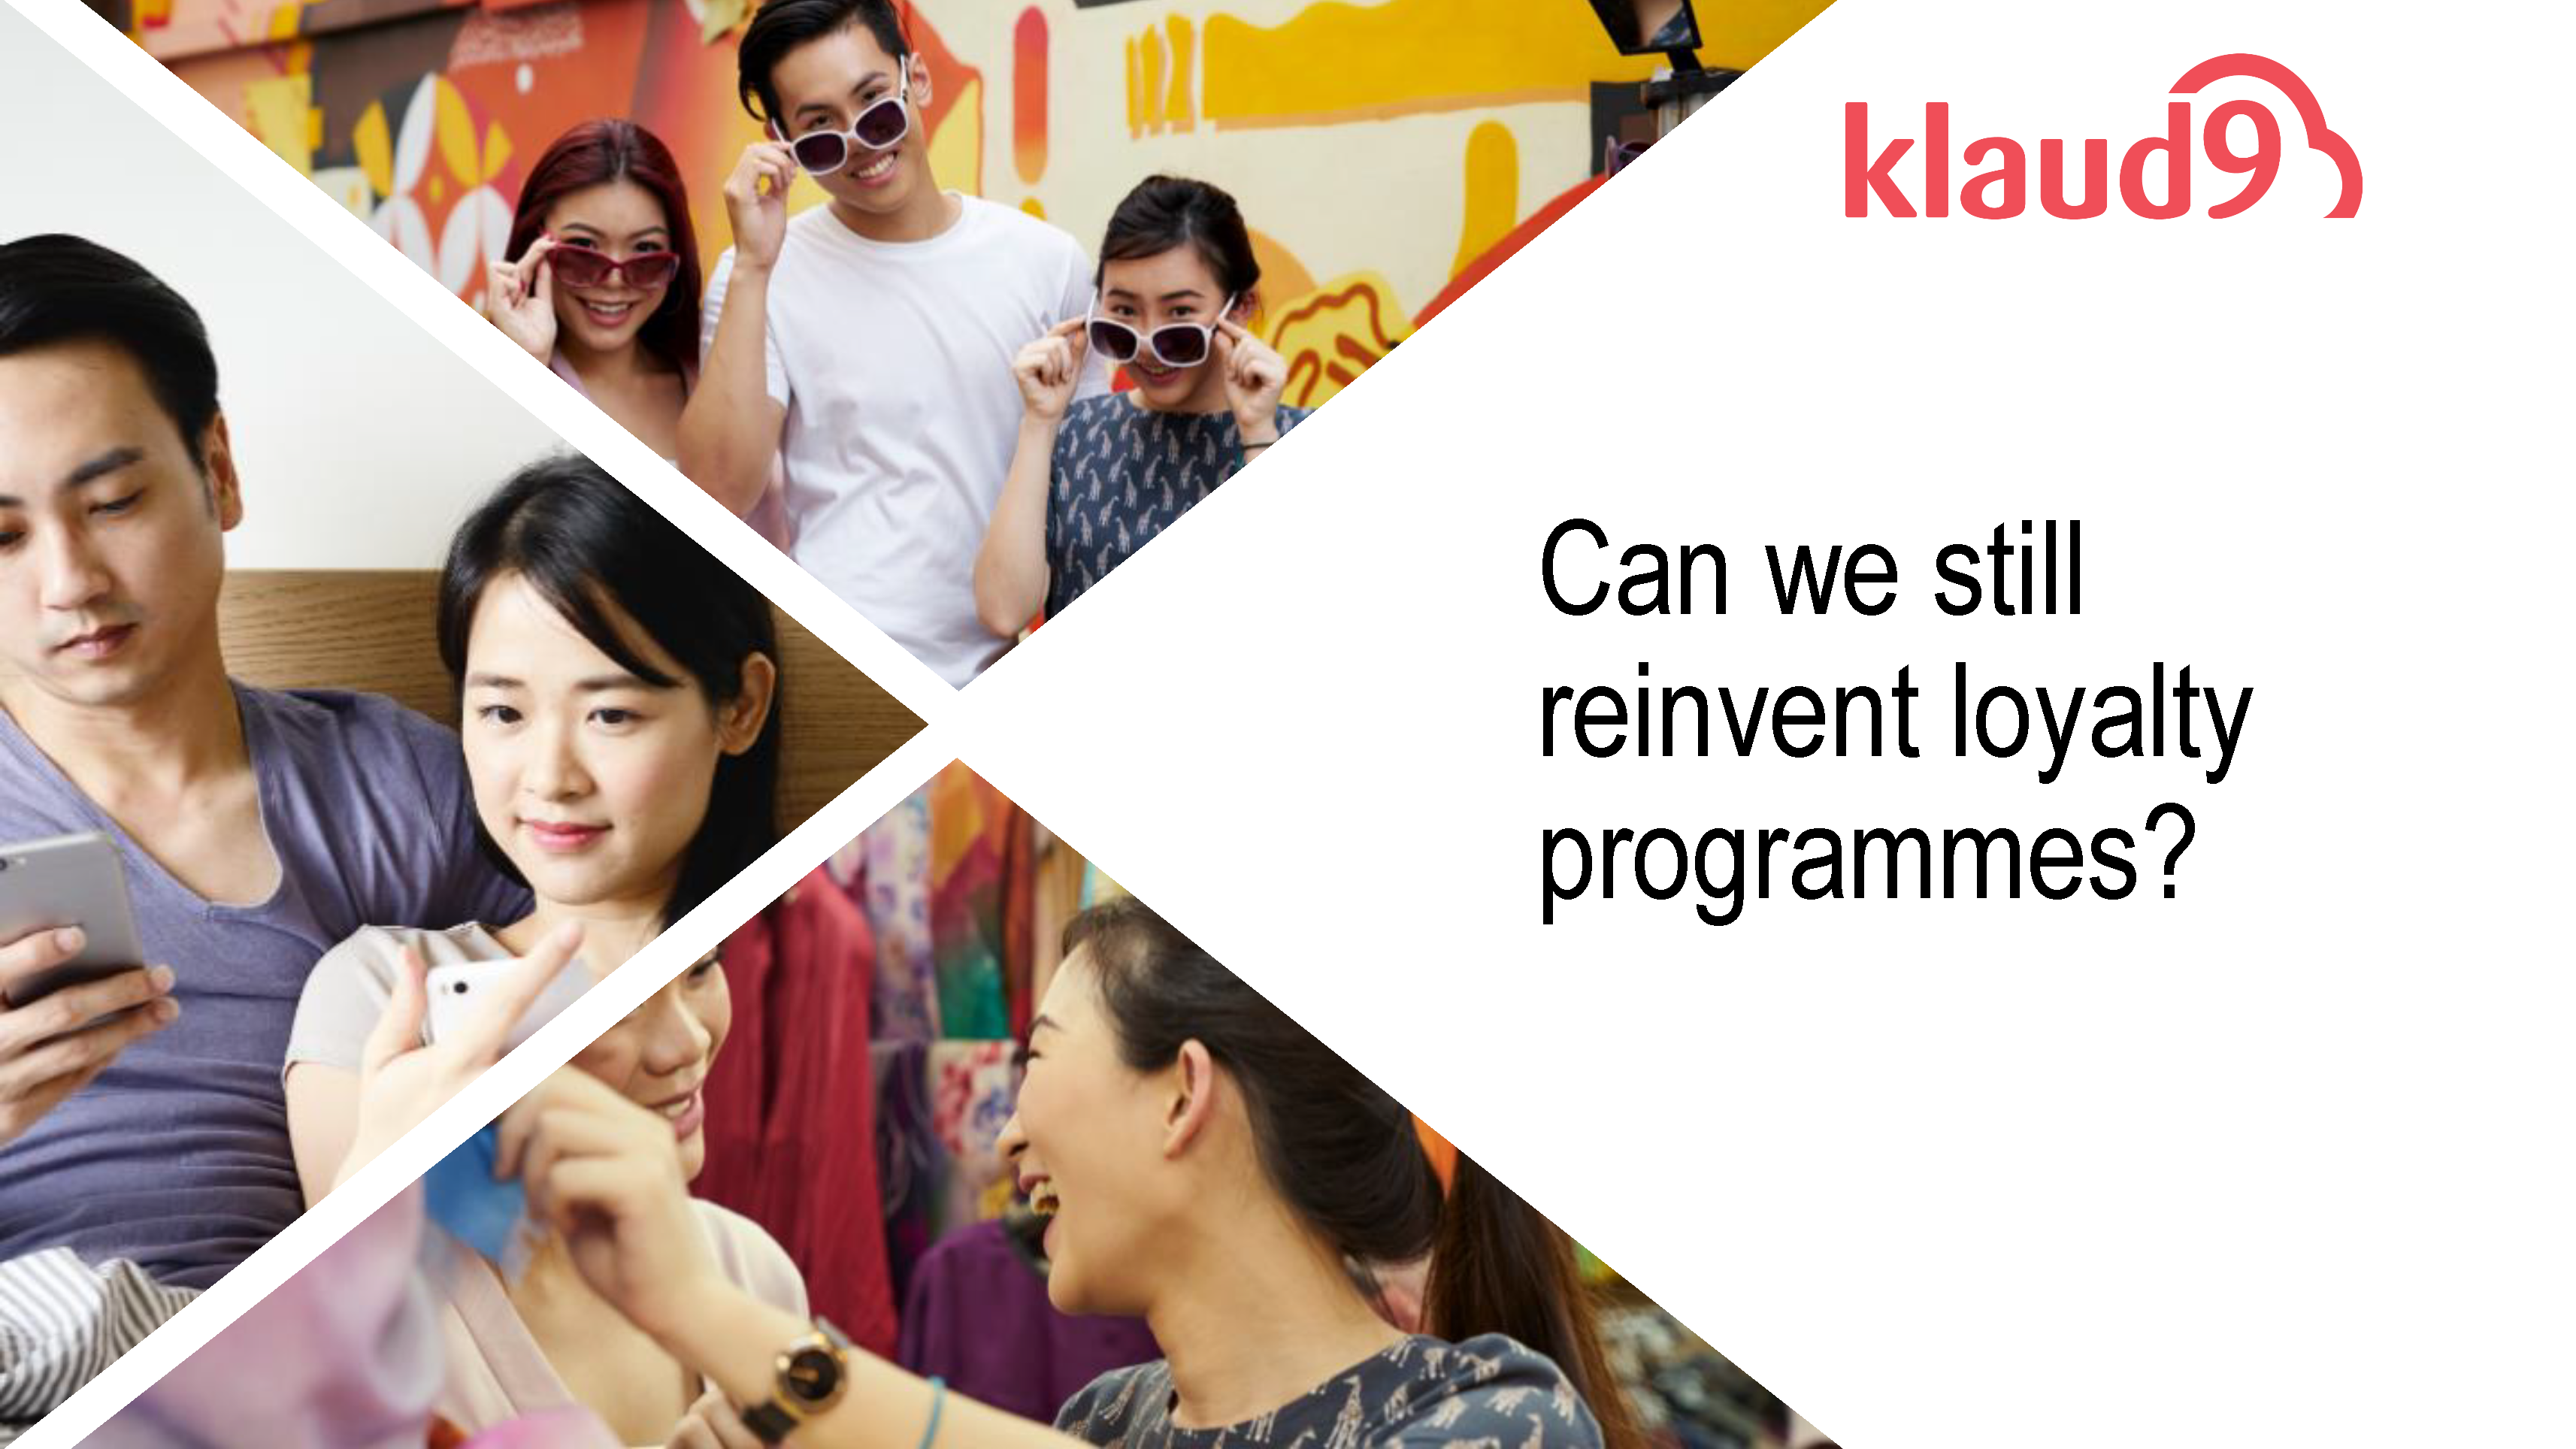 Can we still reinvent loyalty programmes?